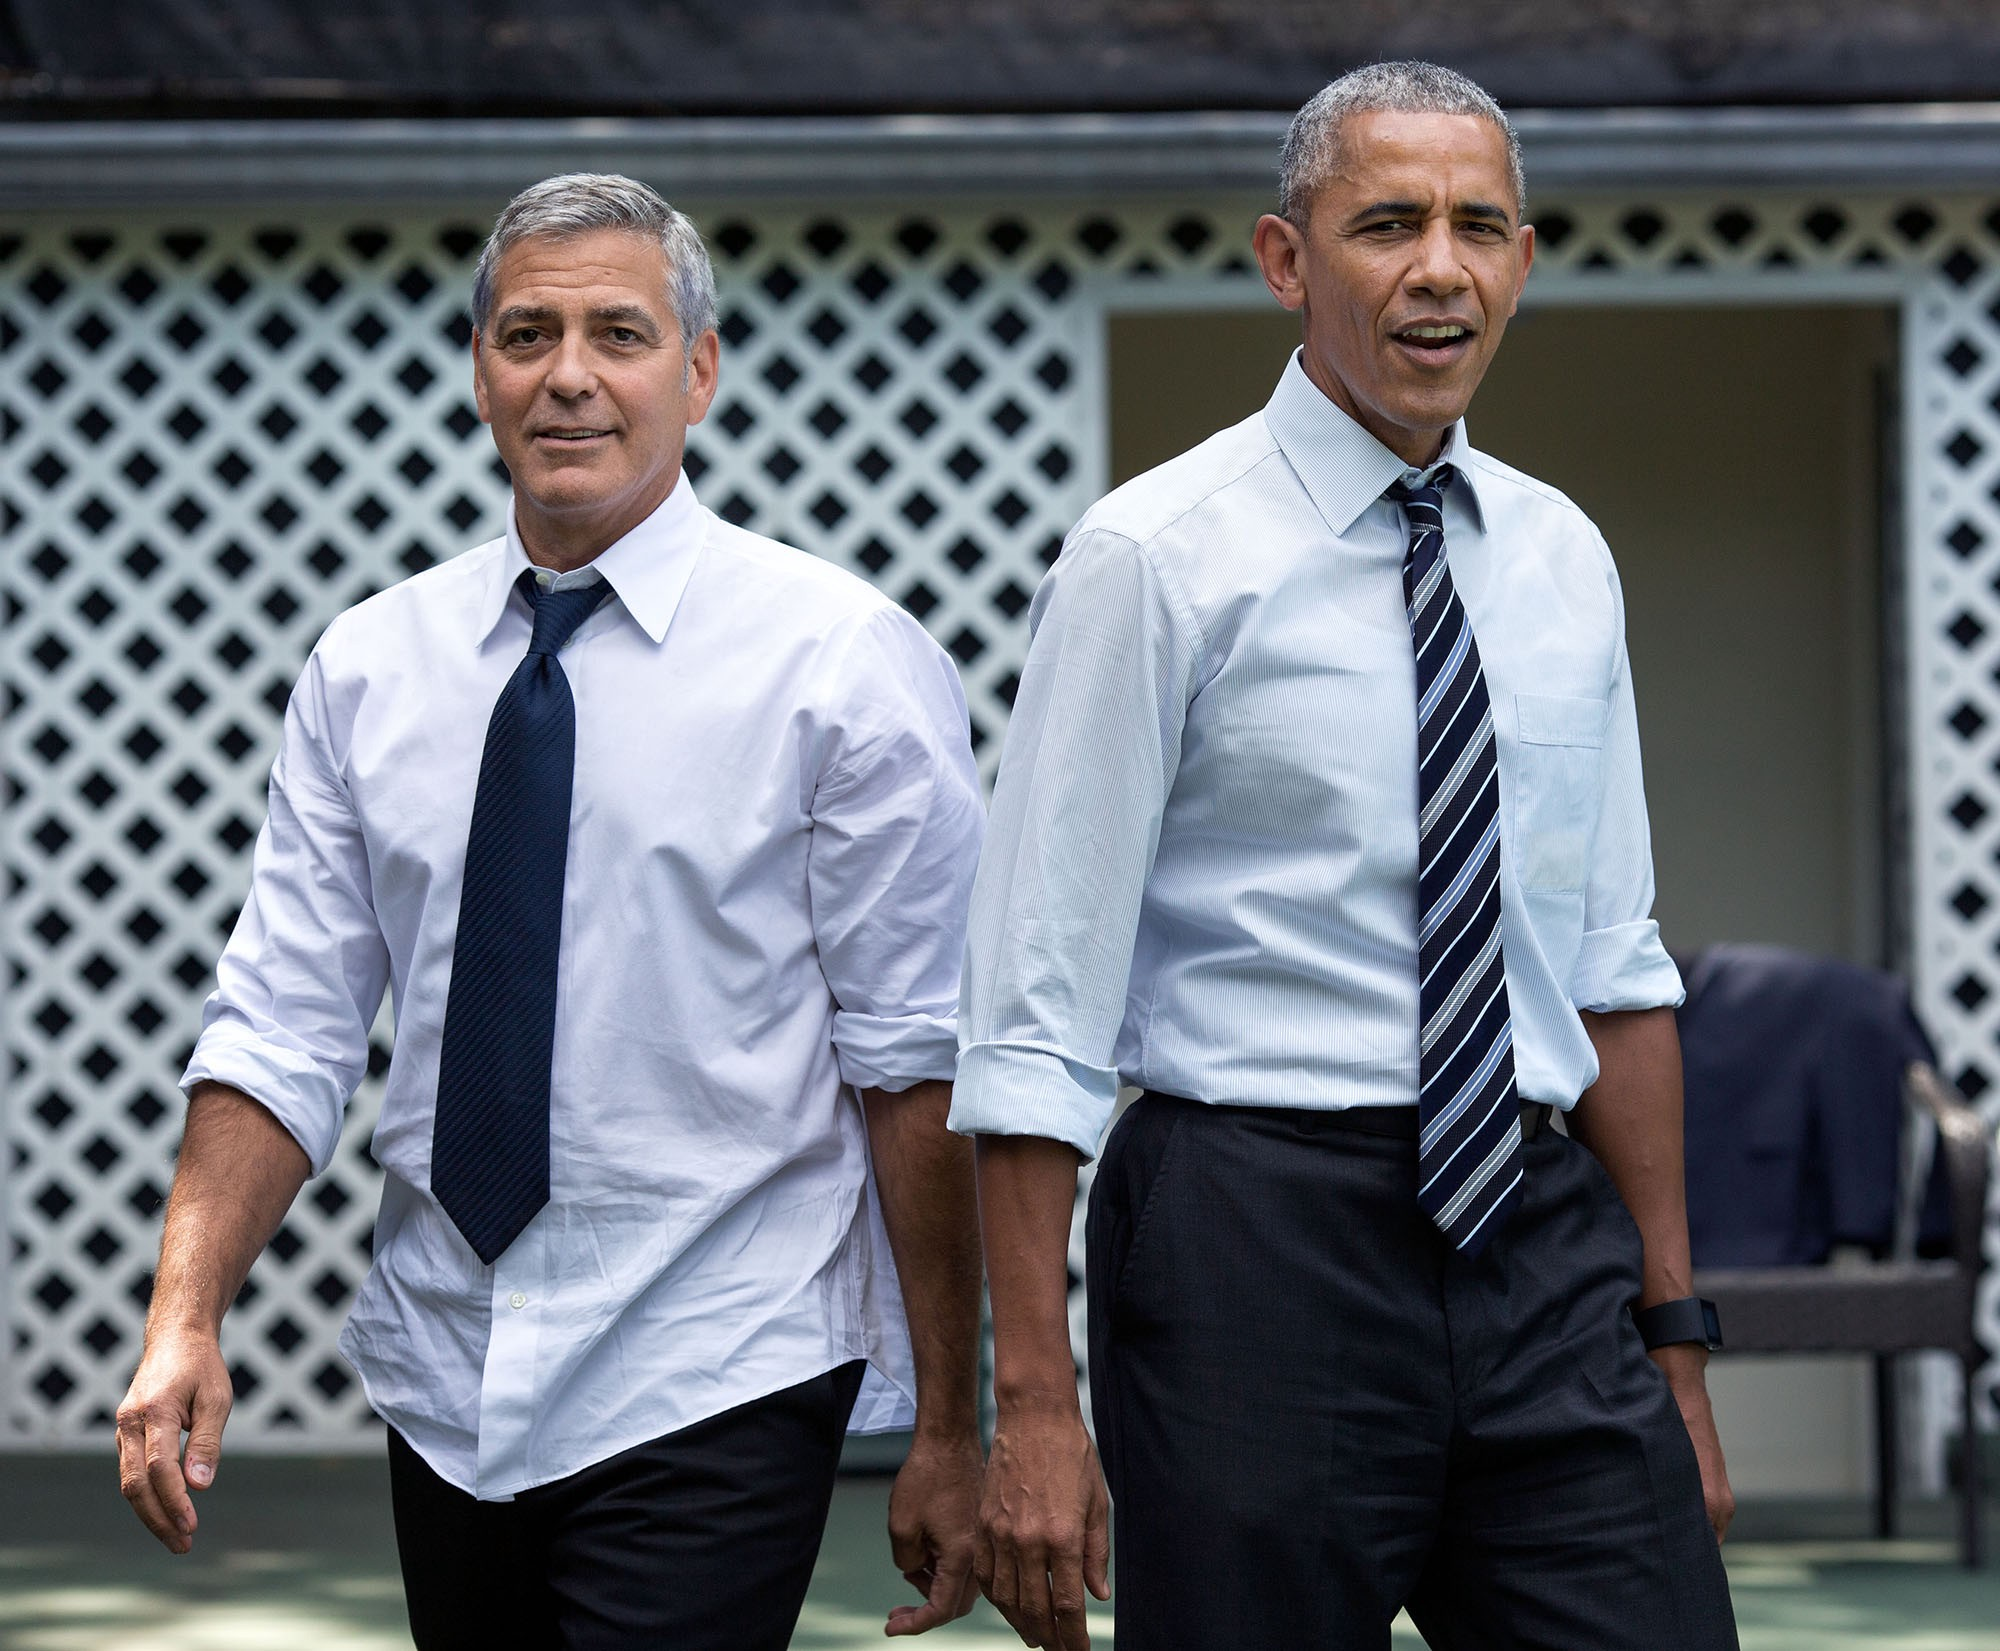 "Sept. 12, 2016 ""After a meeting with actor and human rights activist George Clooney, the President invited him and three of his colleagues to shoot hoops on the White House basketball court. This photo garnered a lot of attention when it was hung on the walls of the West Wing."" (Official White House Photo by Pete Souza)"